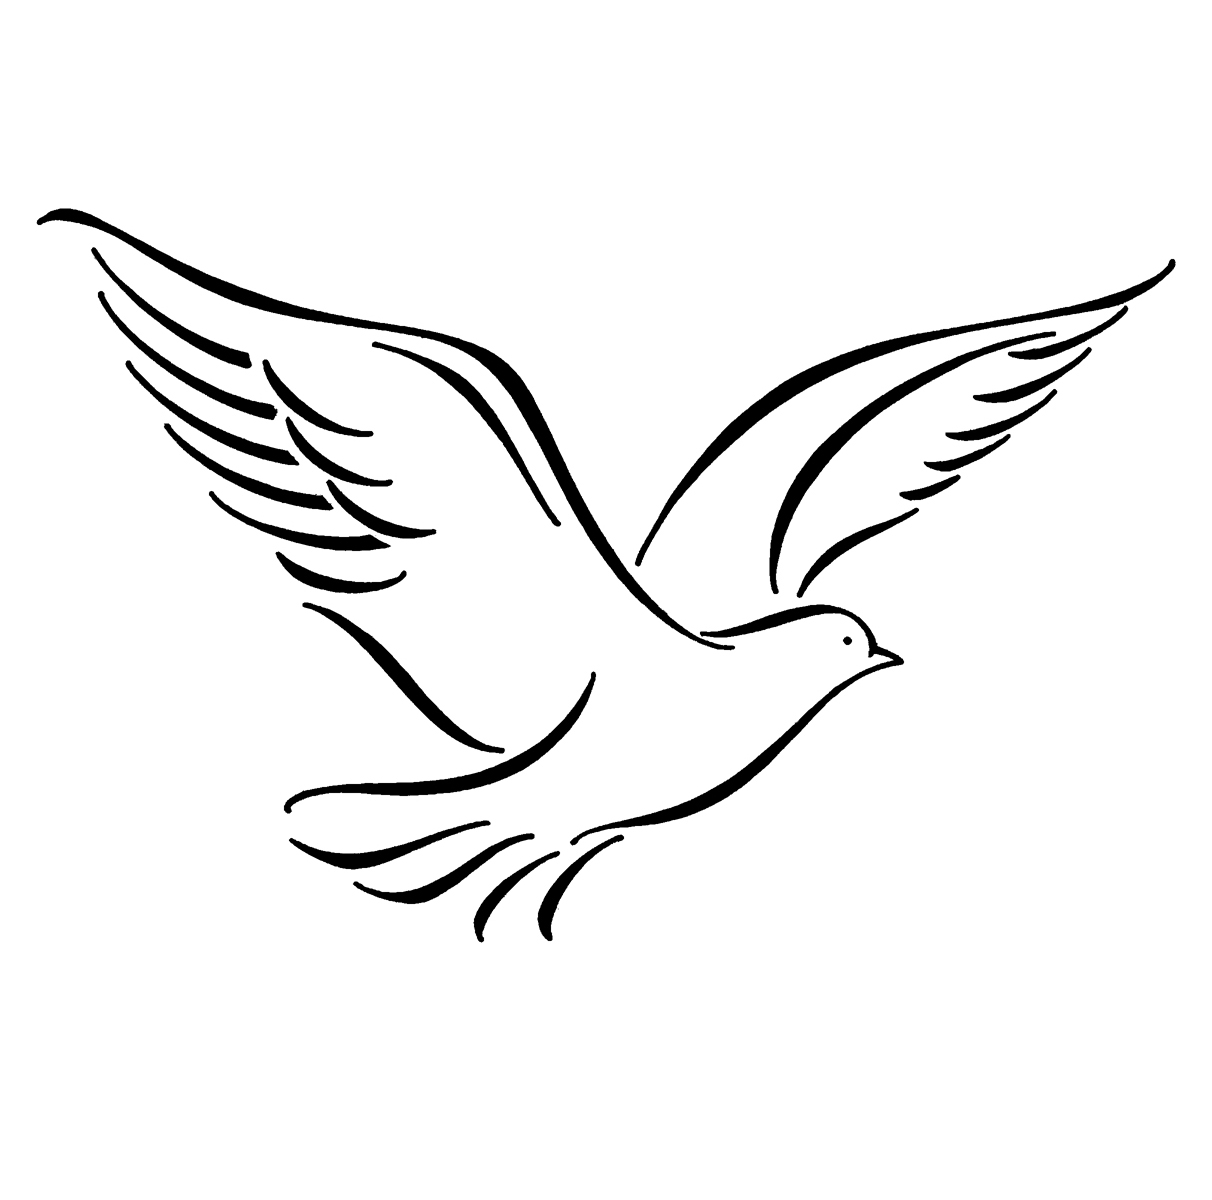 Doves At Wedding Vector Png - ClipArt Best